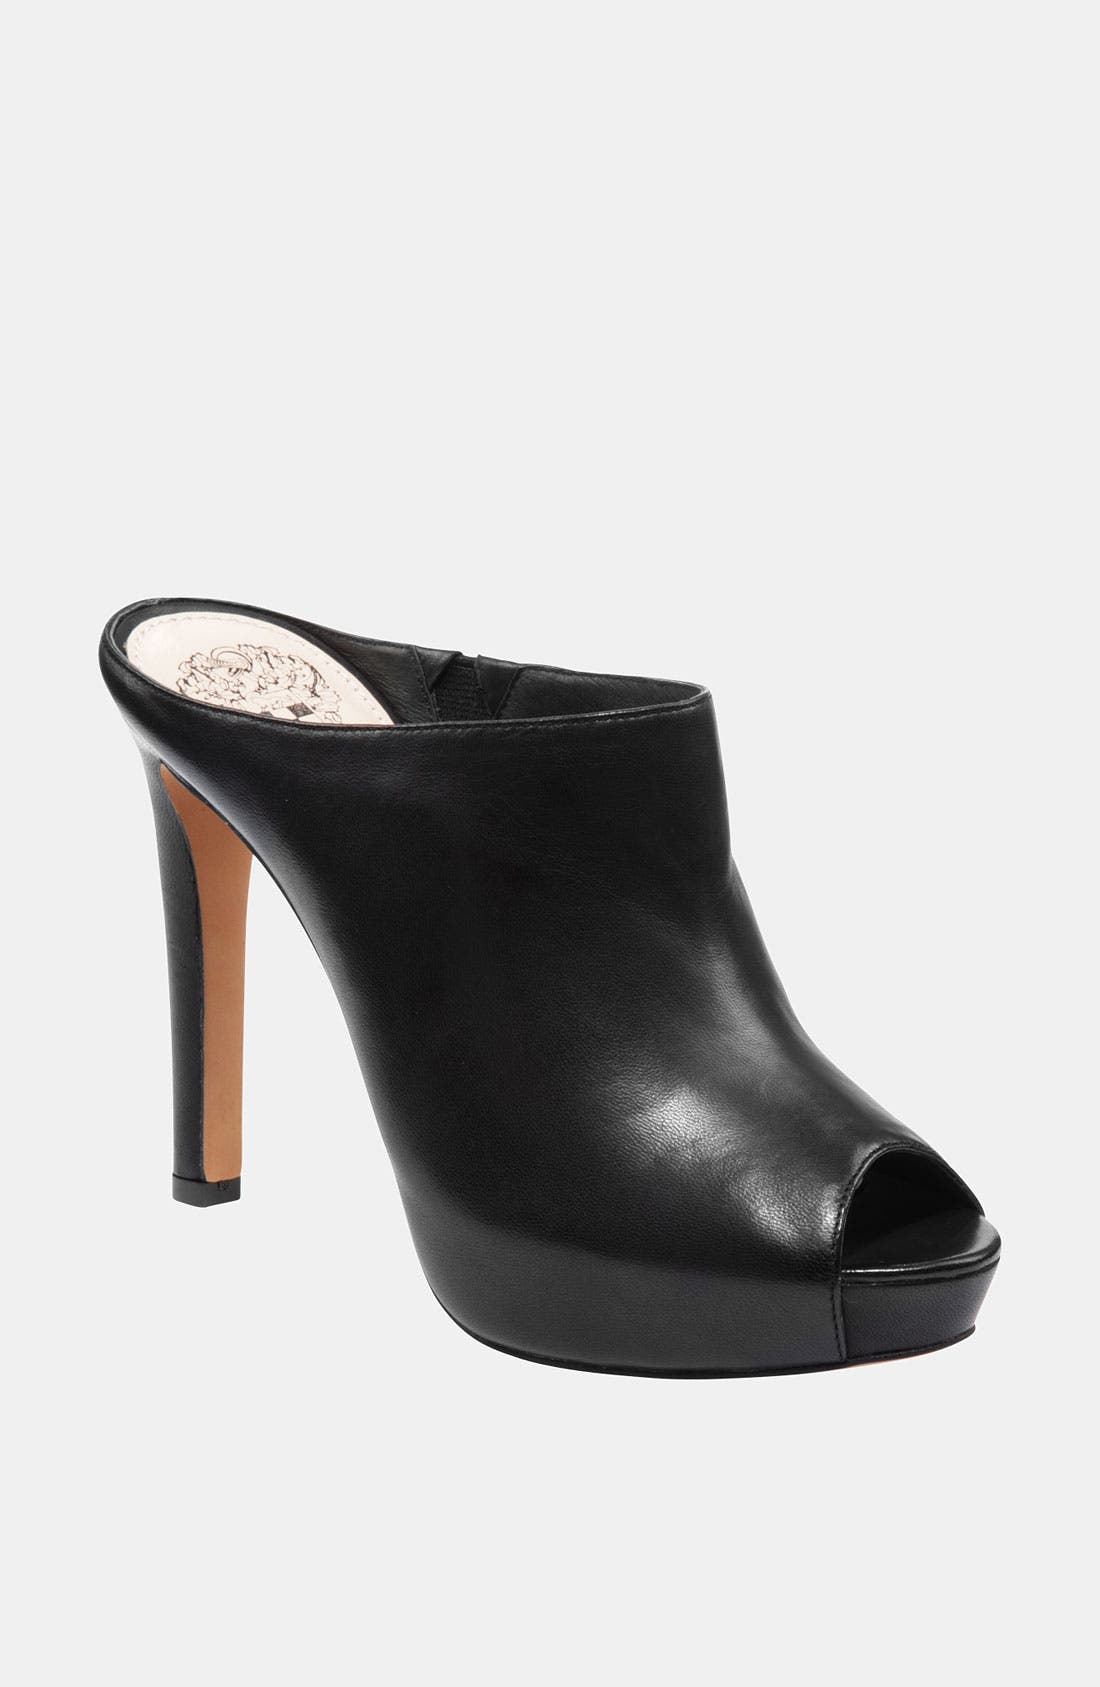 Main Image - Vince Camuto 'Jacell' Pump (Online Only)